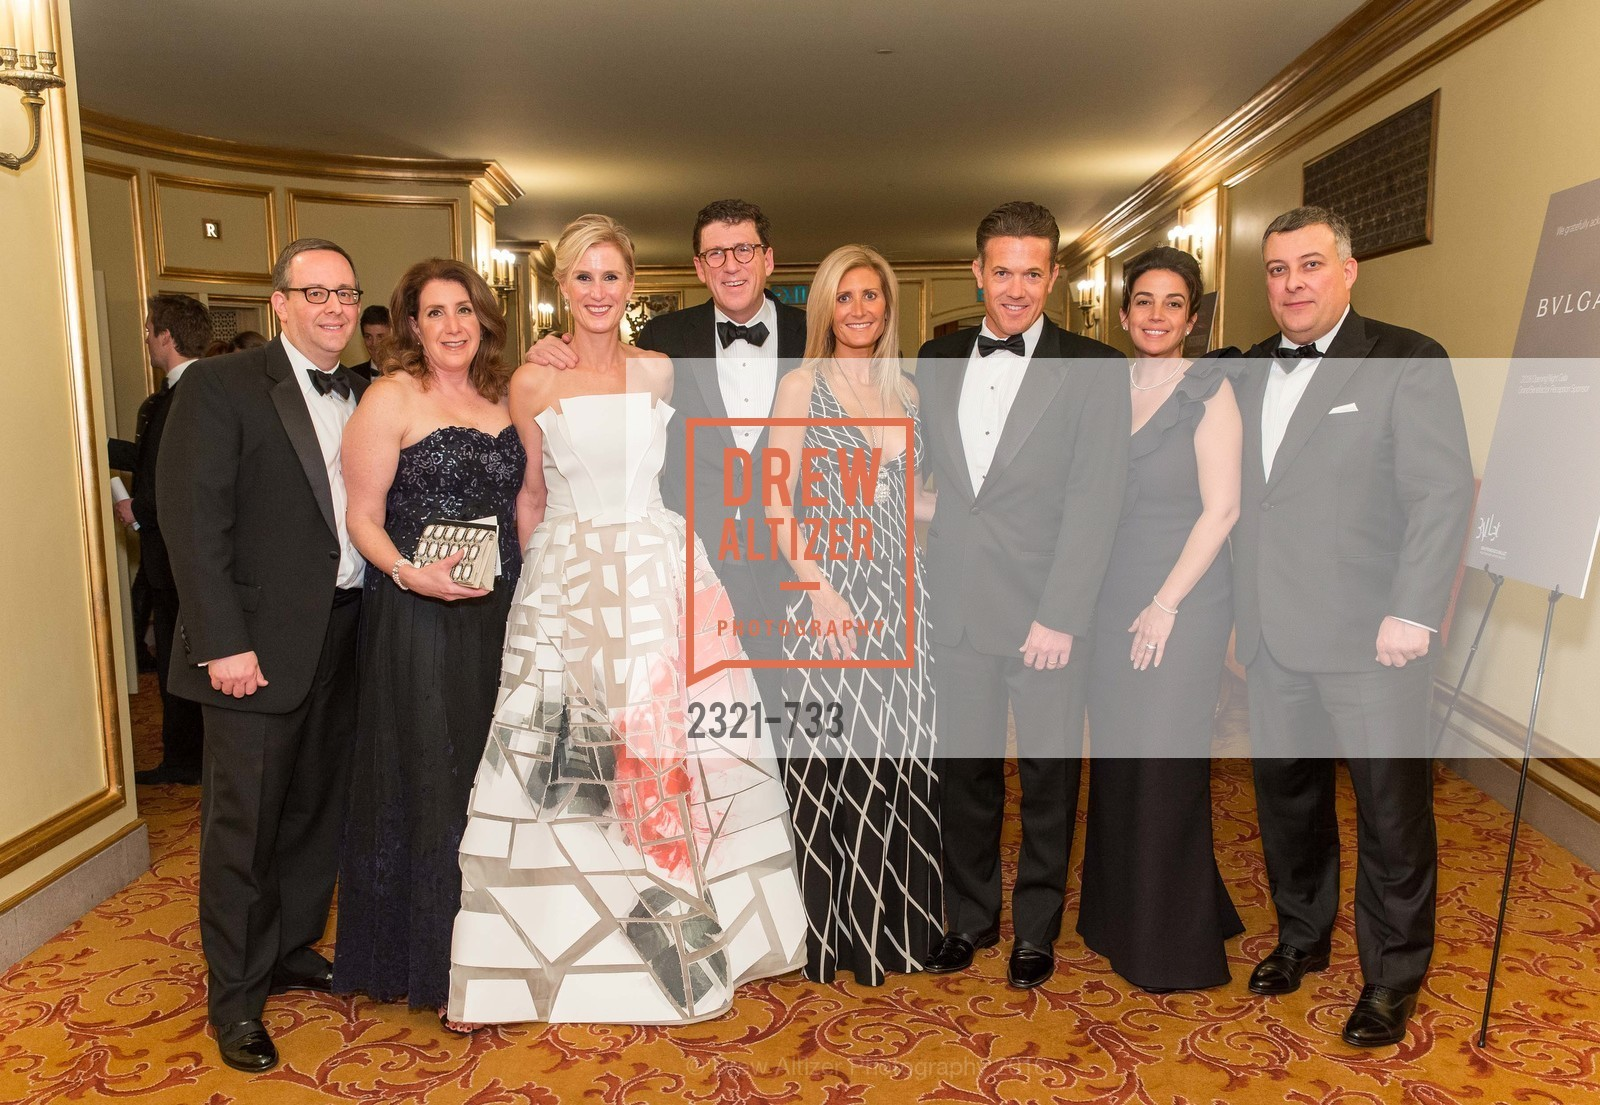 Lowell Singer, Julie Singer, Alison Mauze, Michael Mauze, Carol Sebastiani, Jon Sebastiani, Mekhala Oltramare, San Francisco Ballet 2016 Opening Night Gala, San Francisco City Hall. 1 Dr Carlton B Goodlett Pl, January 21st, 2016,Drew Altizer, Drew Altizer Photography, full-service agency, private events, San Francisco photographer, photographer california